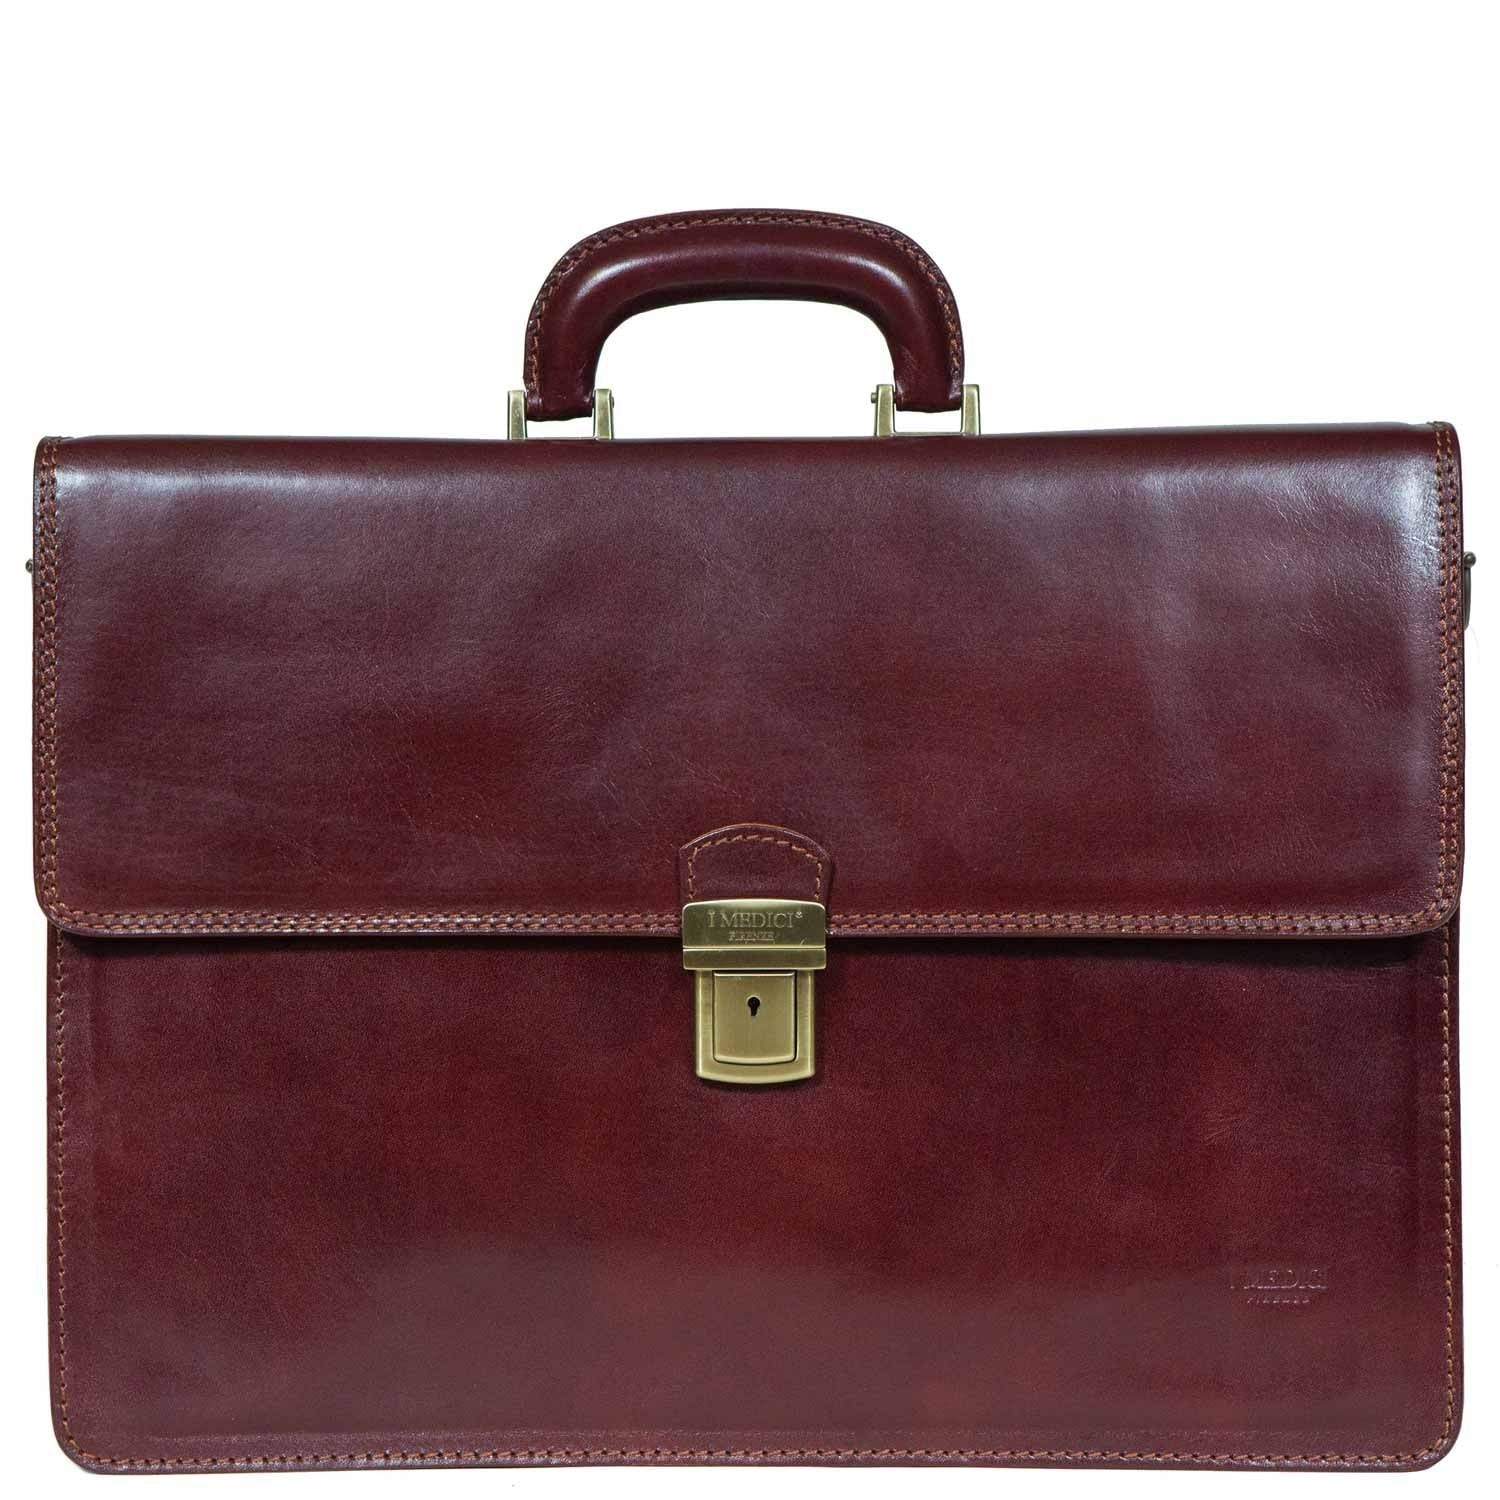 CEO leather briefcase